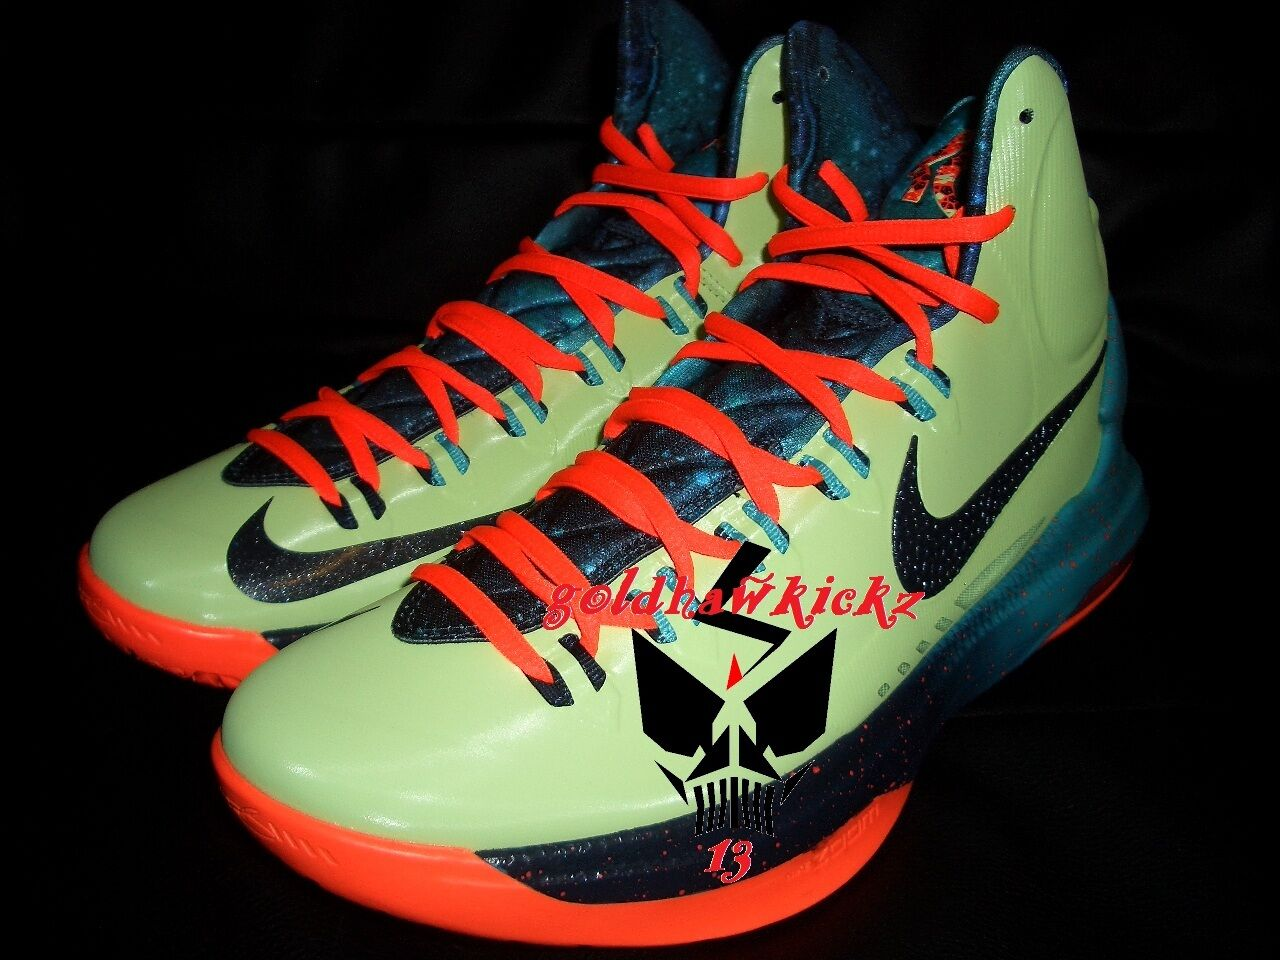 Nike kd / 5 nba - all - star star star - spiel raum 72 houston galaxie durant asg - 583111 300 7bce7e